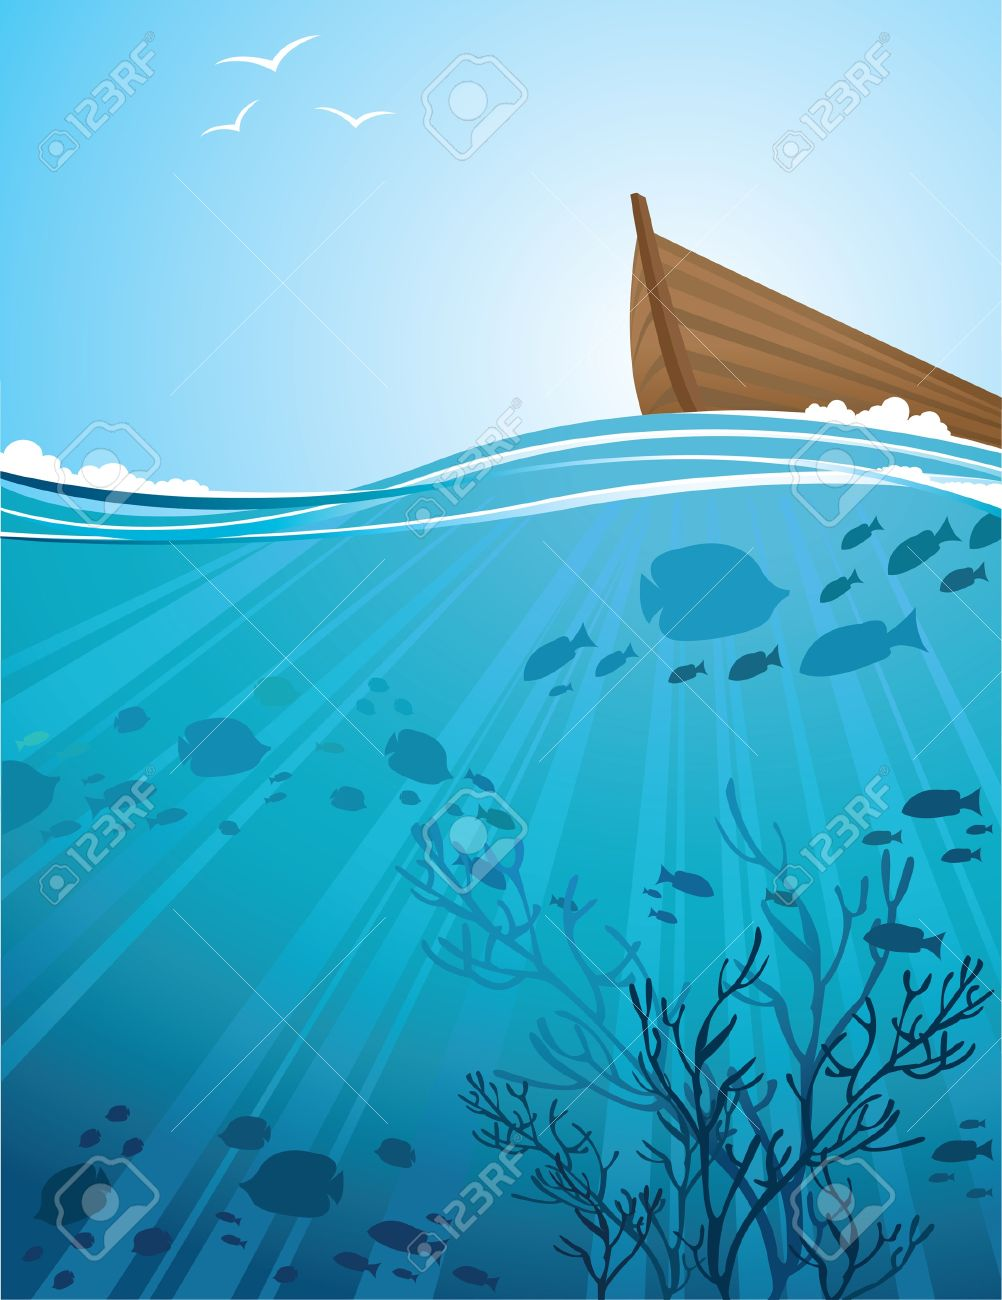 Silhouettes of fish and sun rays in a sea and boat Stock Vector - 12370257